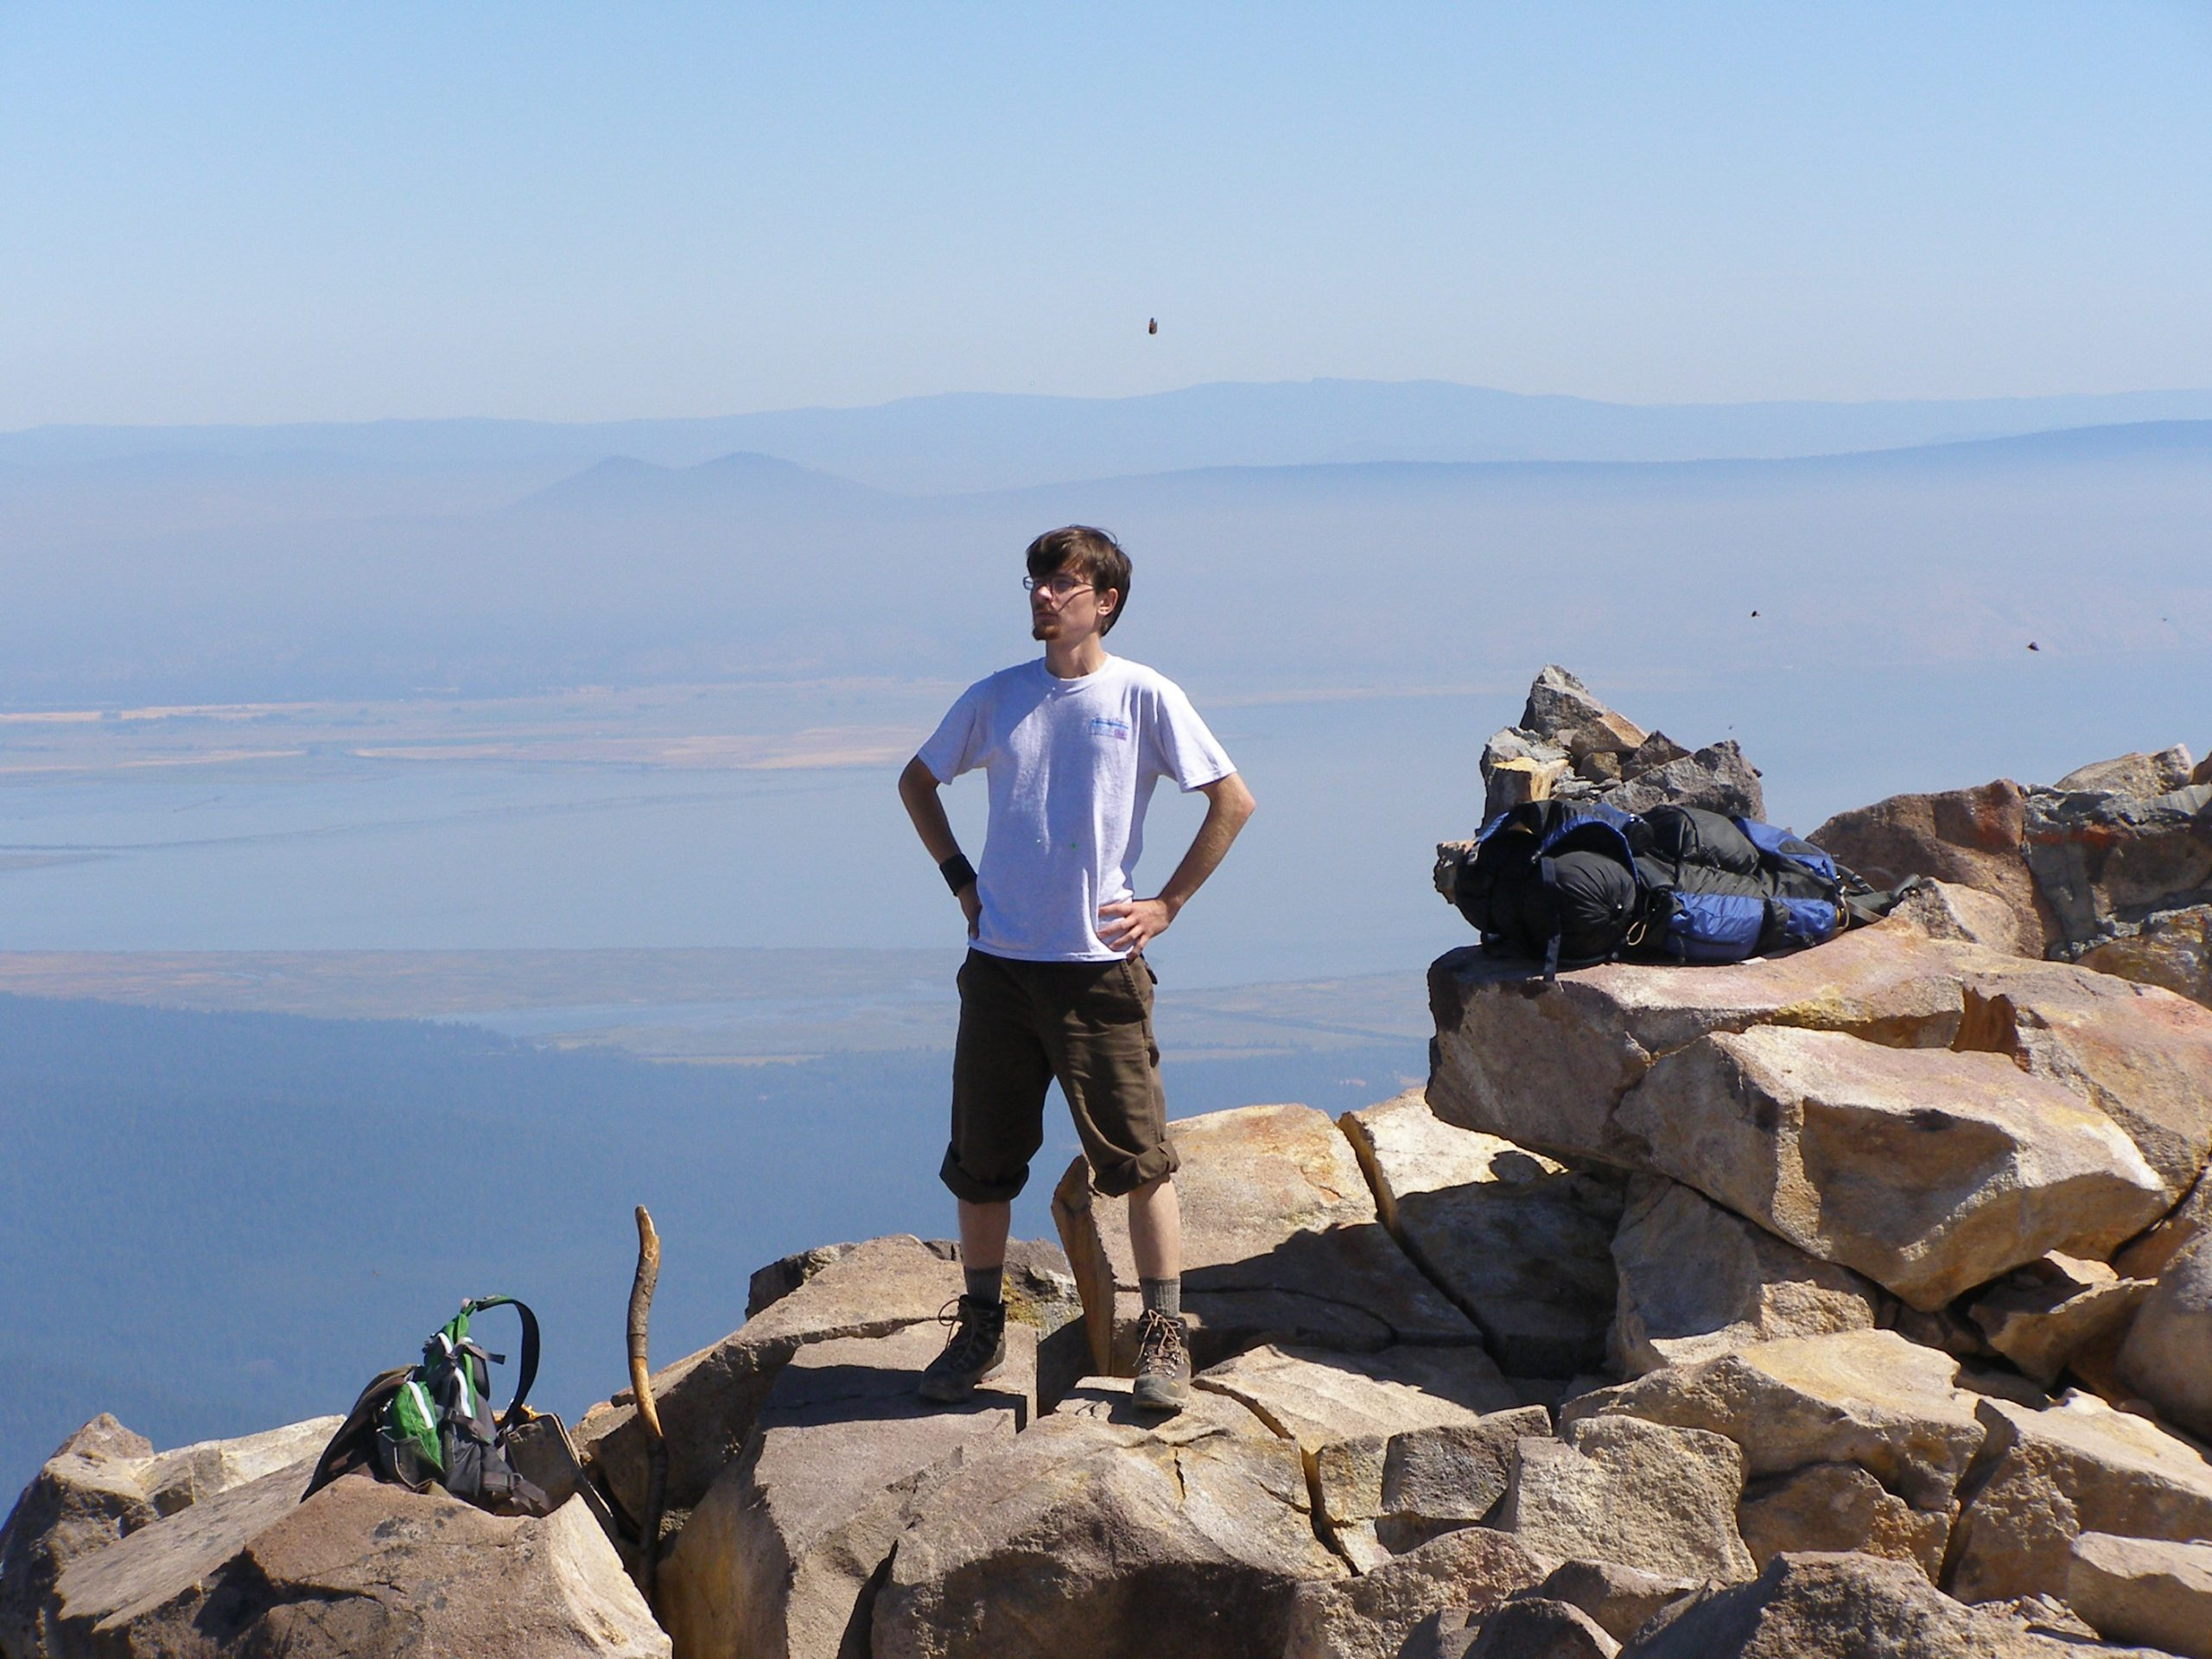 Paul Boers stands on a rocky overlook